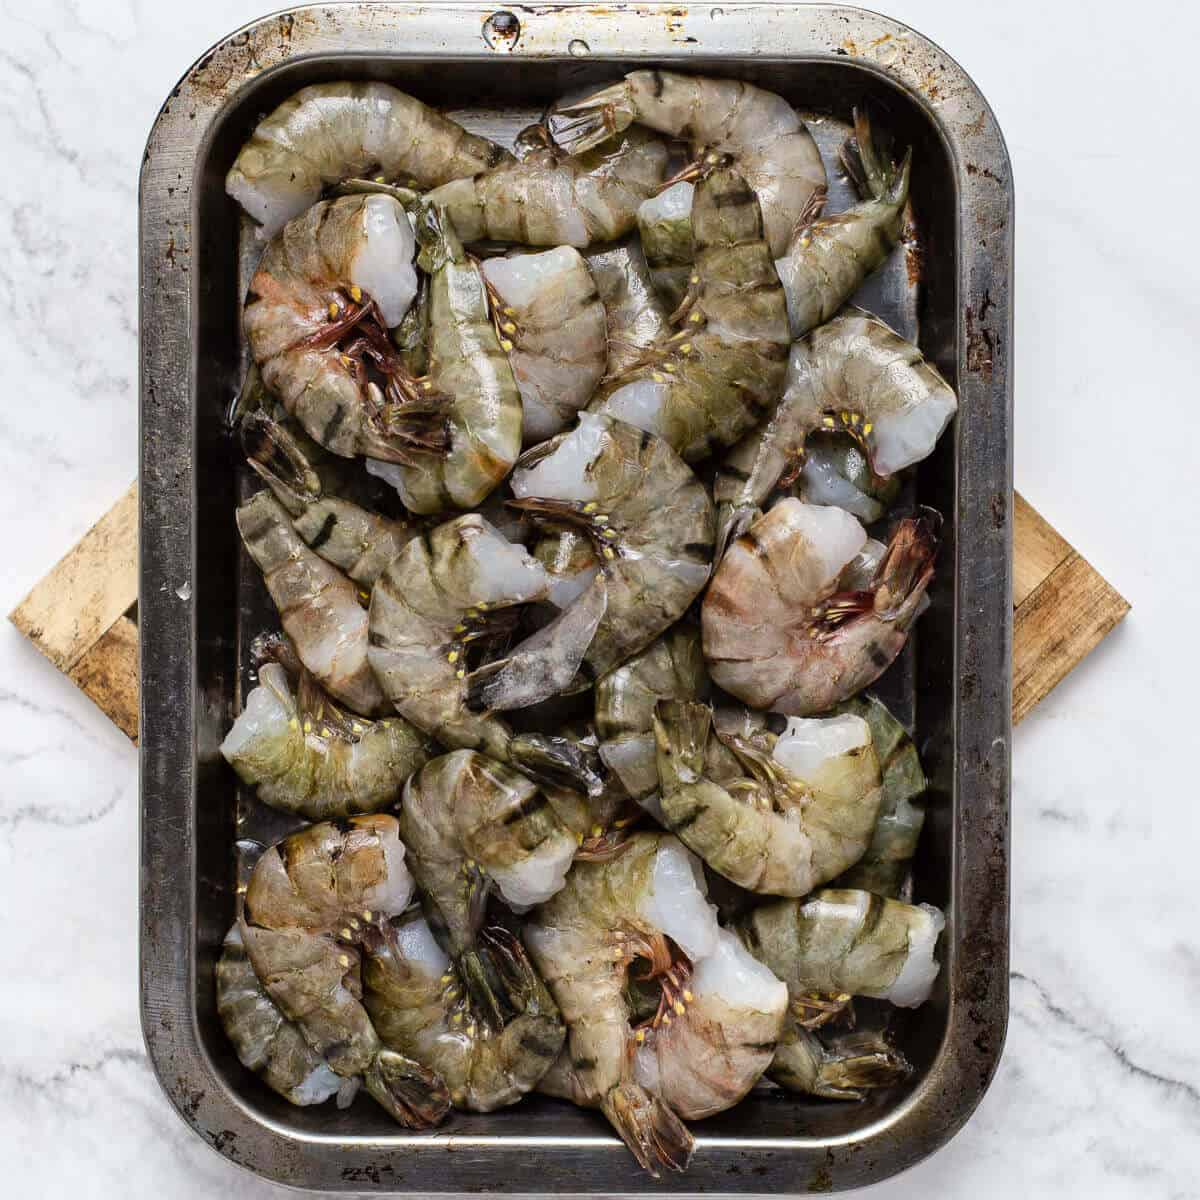 headless raw shrimps on a metal tray on a wooden coaster and marble background